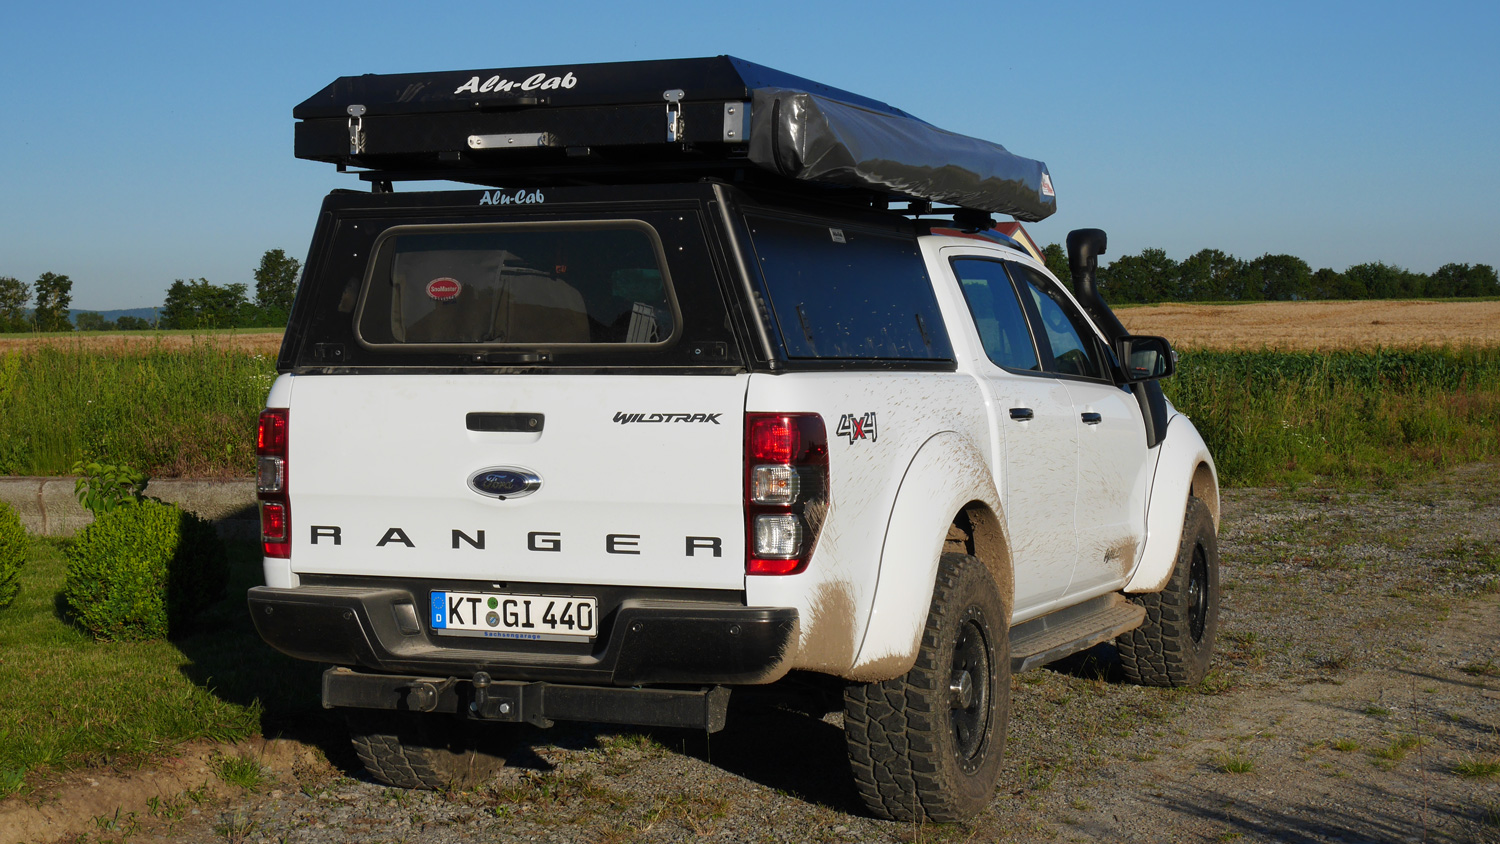 Alu-Cab-Hardtop-Explorer-3---Dachzelt-Expedition-3---Ford-Ranger-128-1500x844.jpg